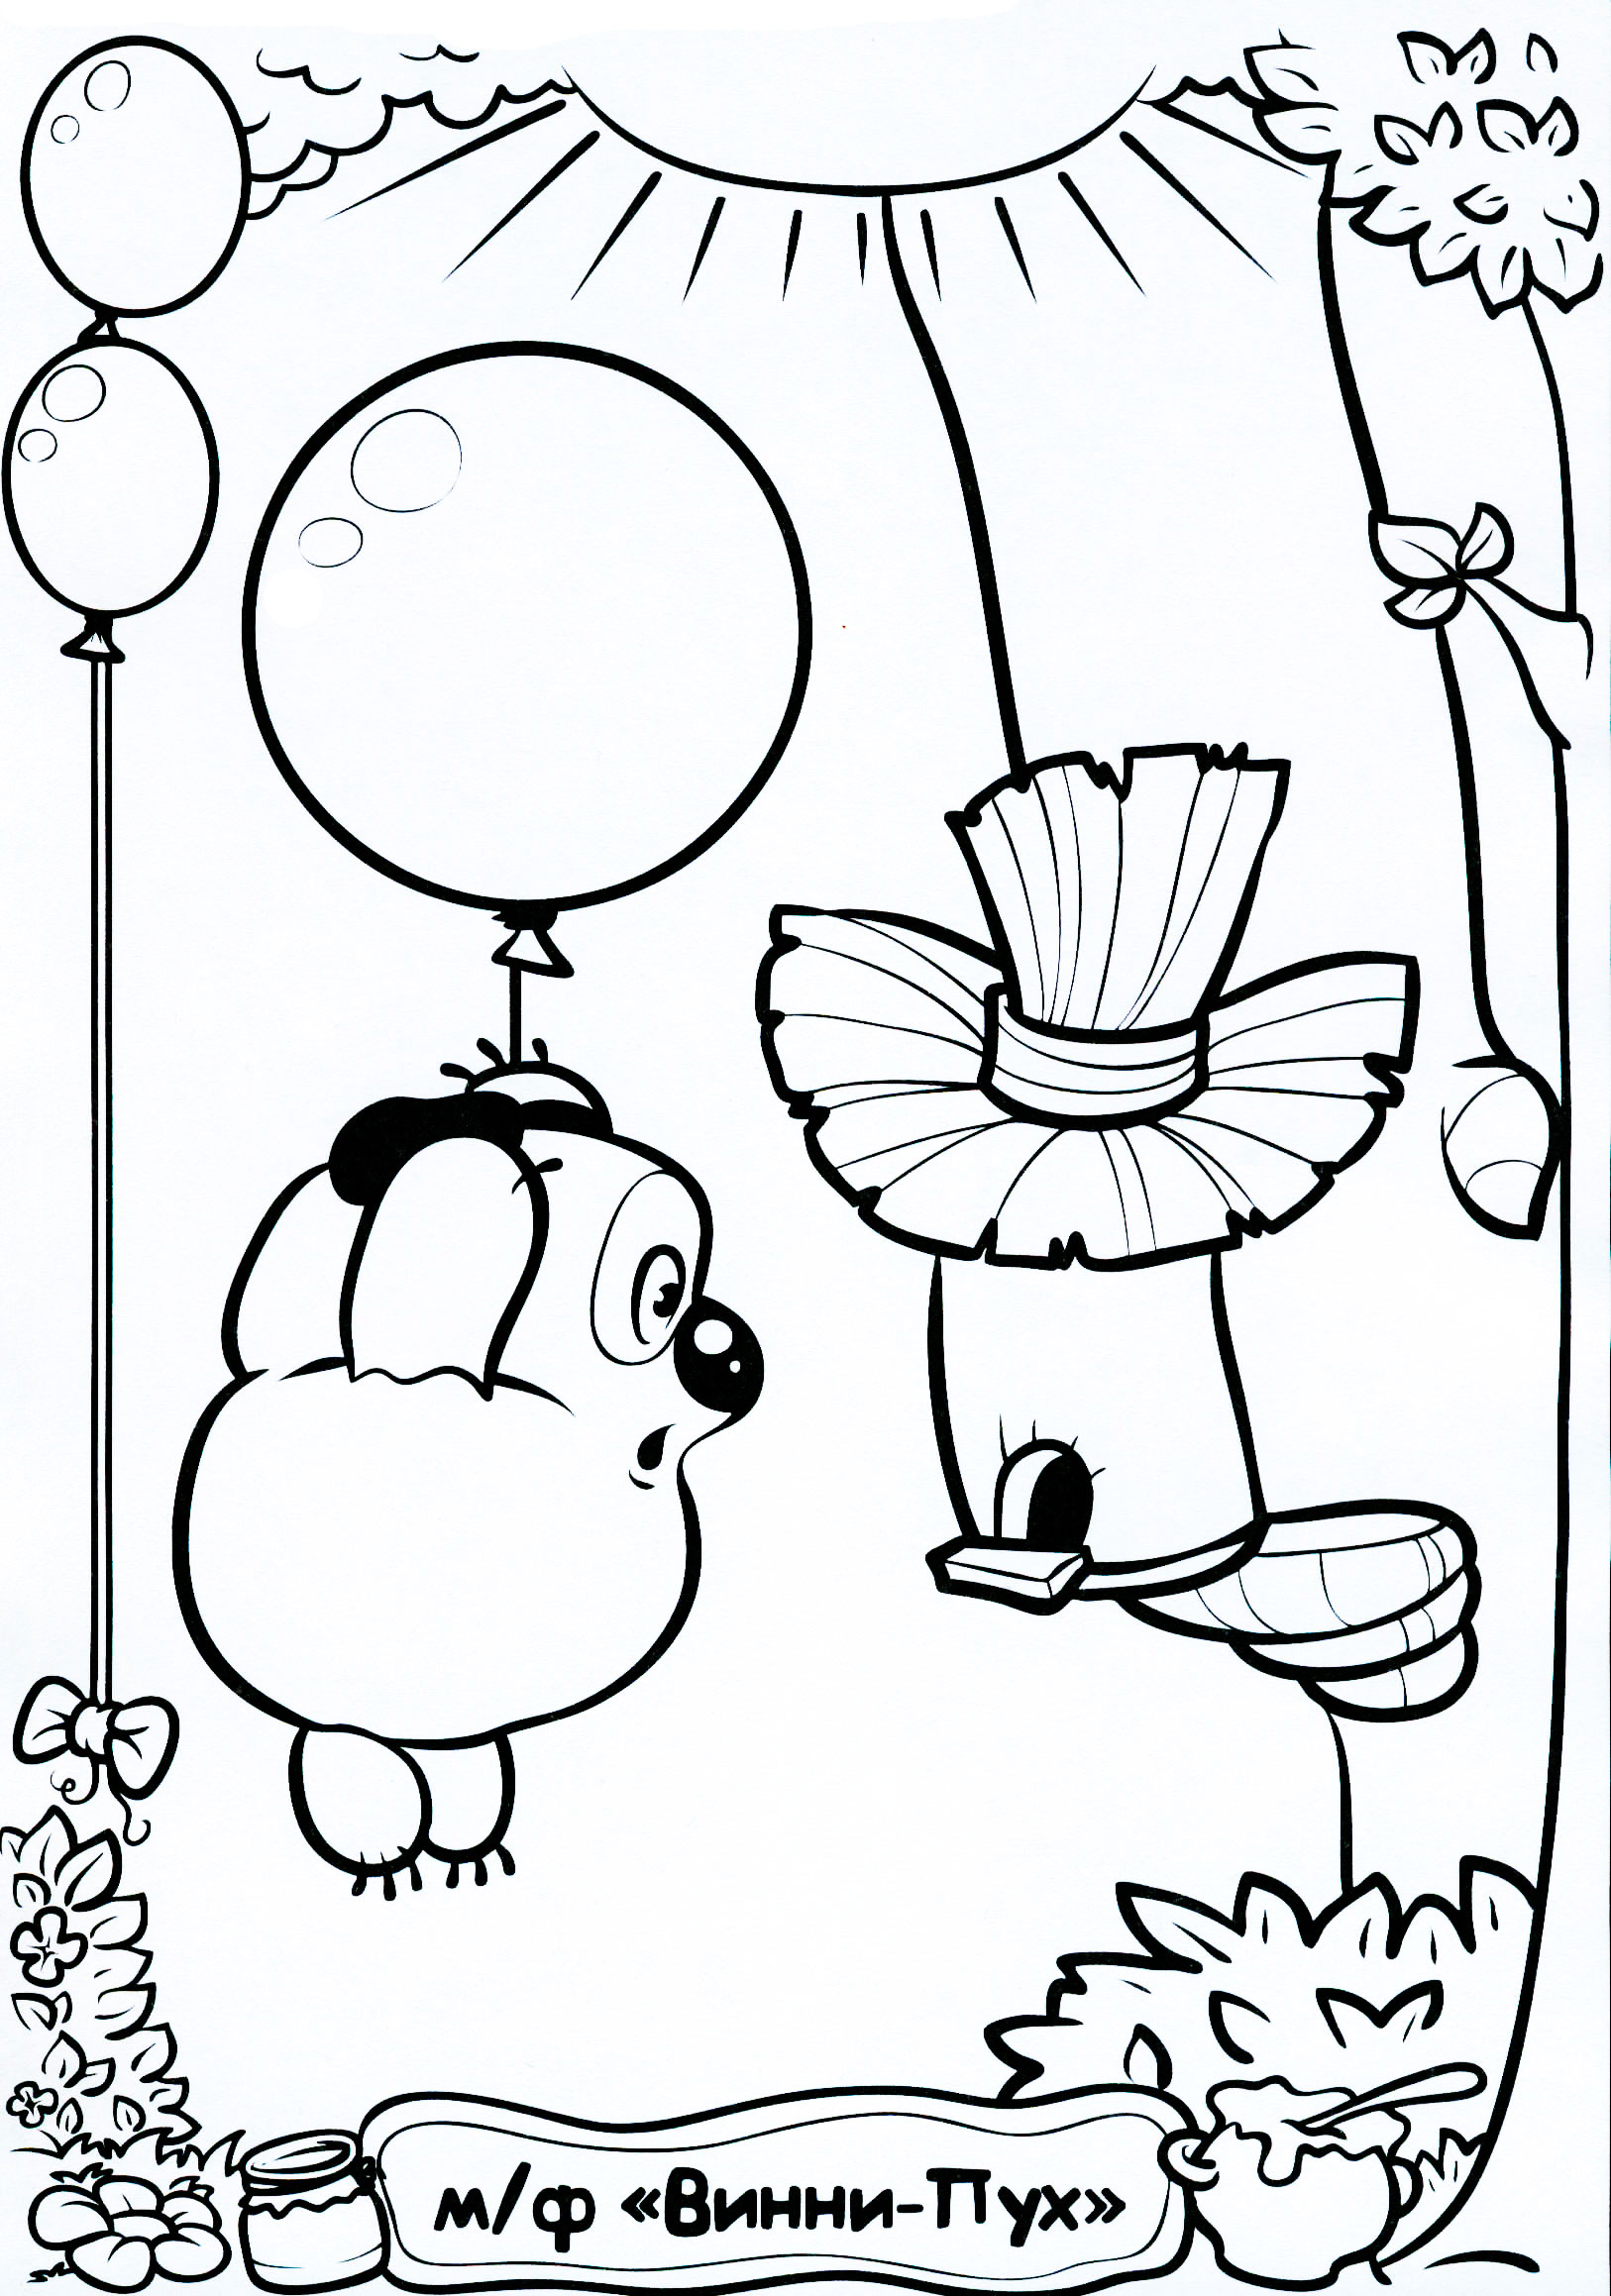 free coloring pages of chevy donk